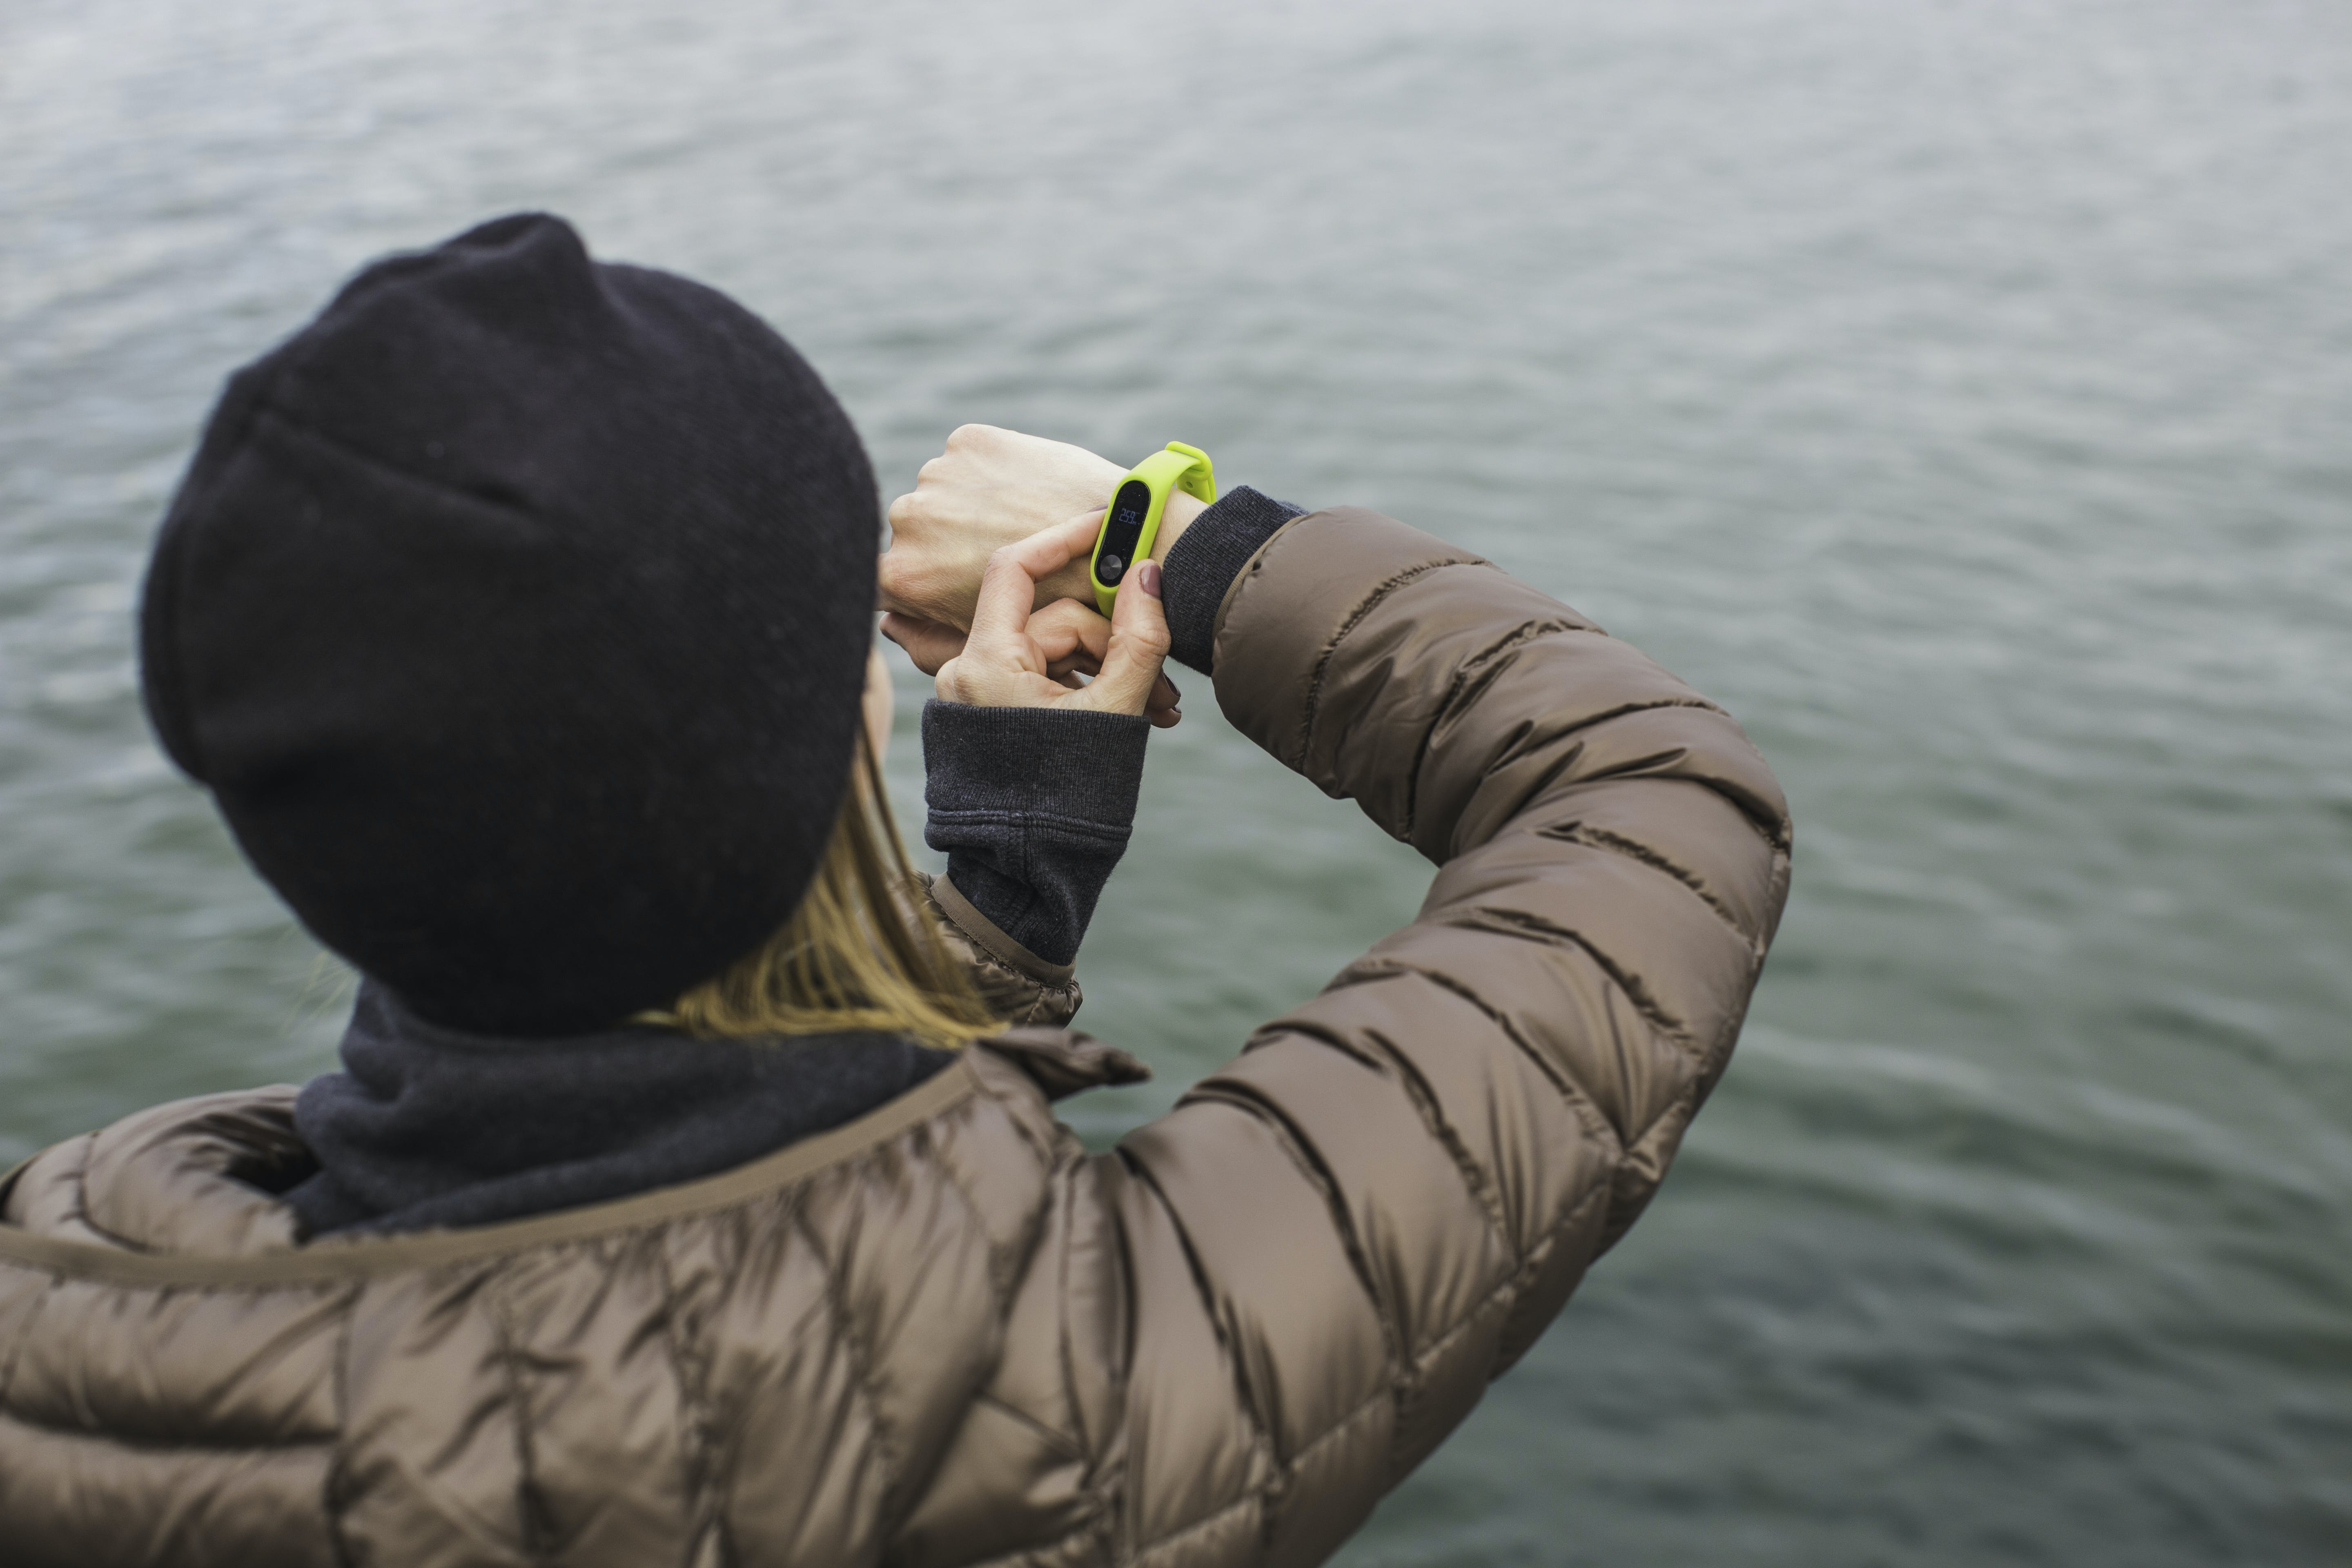 Woman Looking at Black and Yellow Activity Tracker